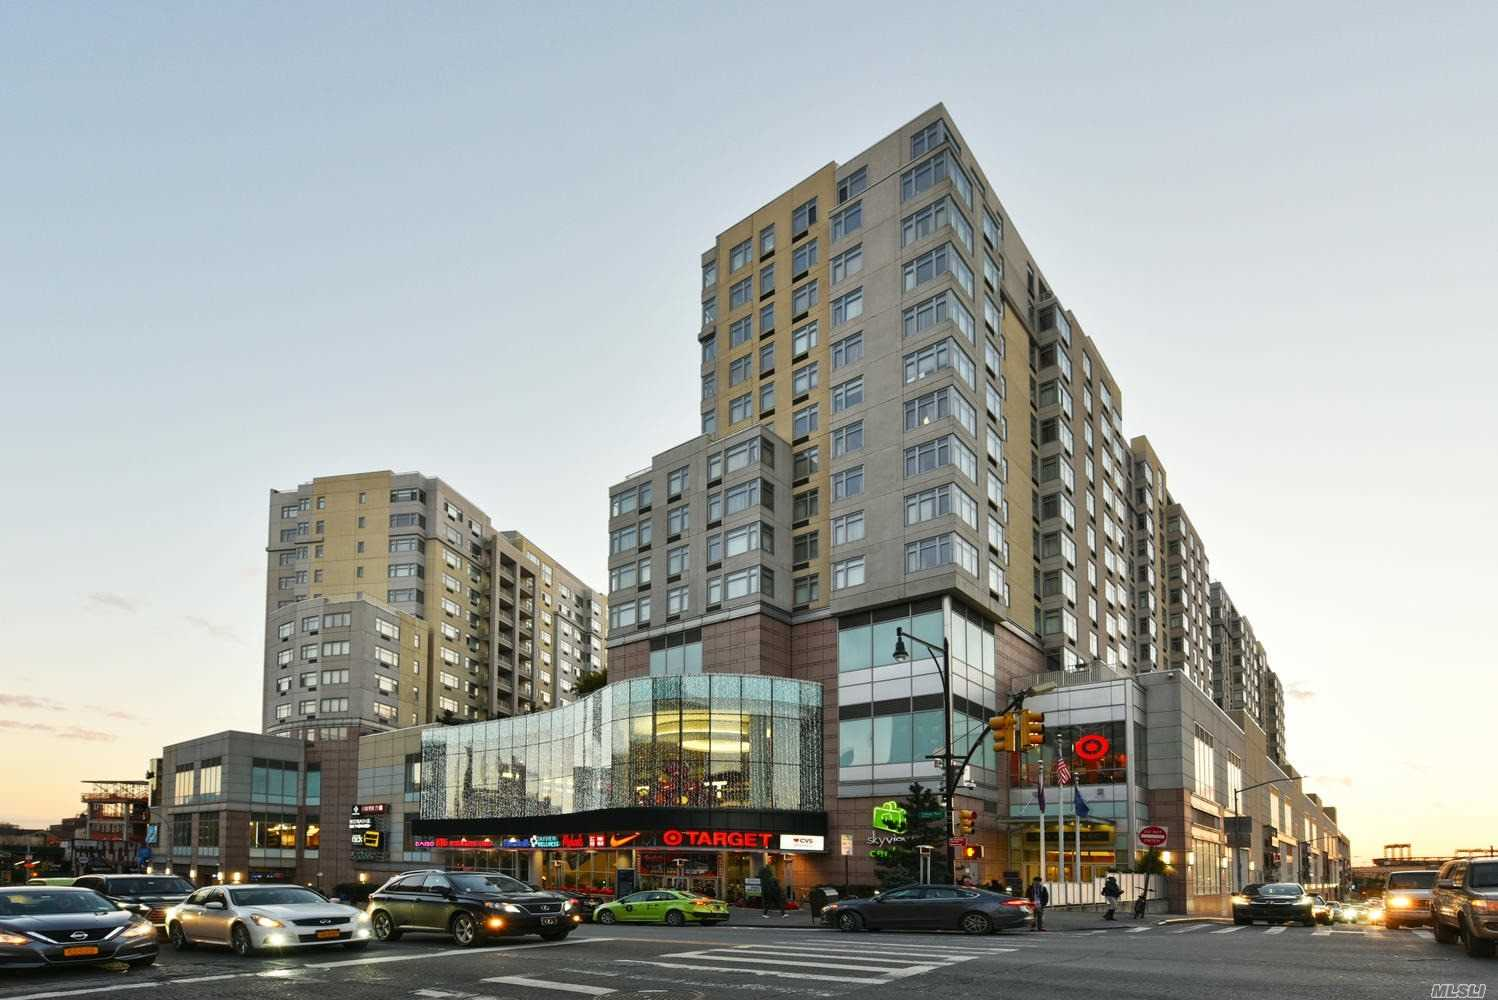 Property for sale at 40-28 College Point Boulevard # 1001, Flushing NY 11354, Flushing,  New York 11354